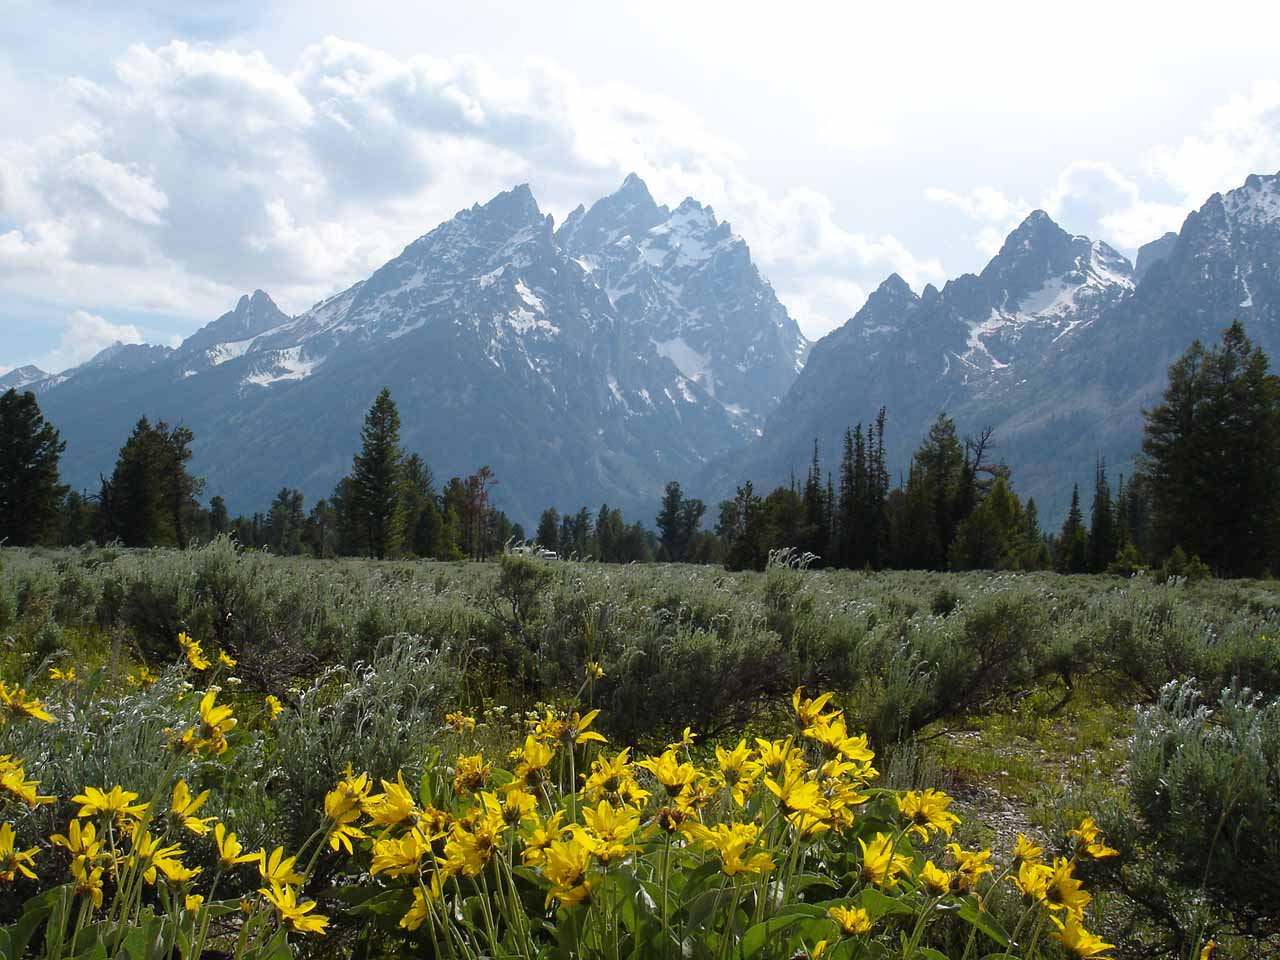 While waterfall hunting, we spotted wildflowers blooming before the Teton Range